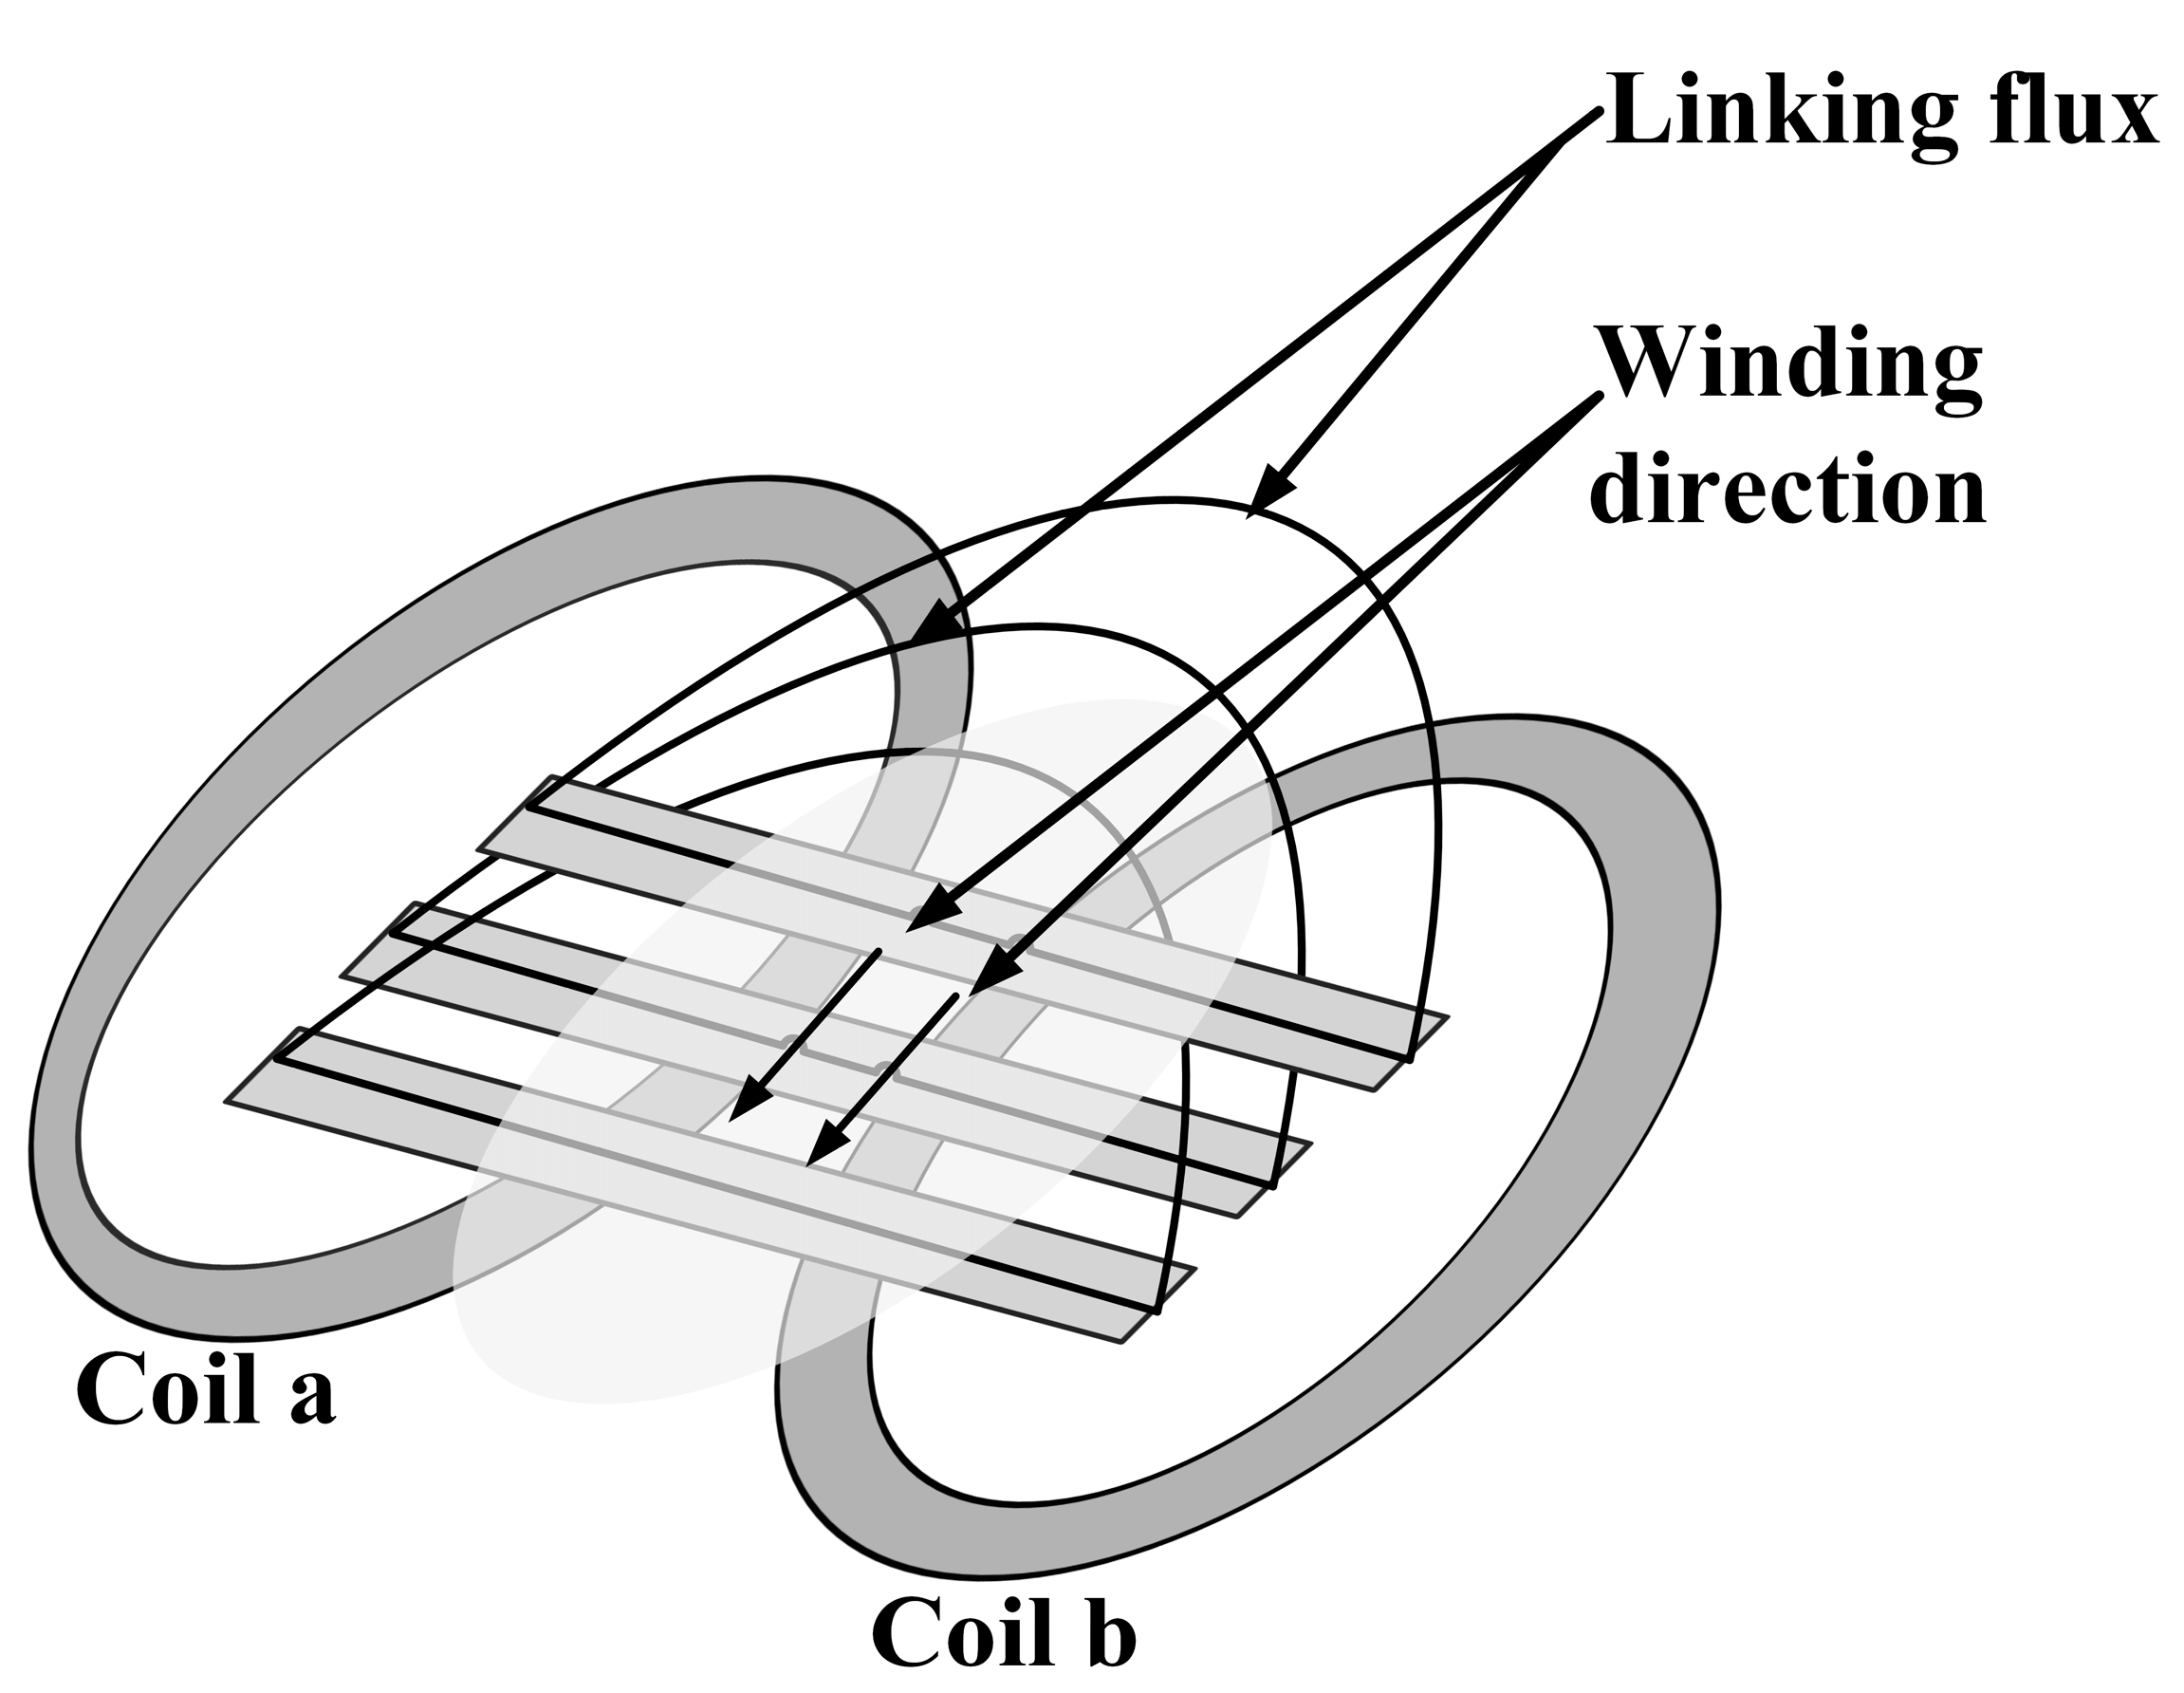 Outstanding Winding Connection Model - Wiring Diagram Ideas ...